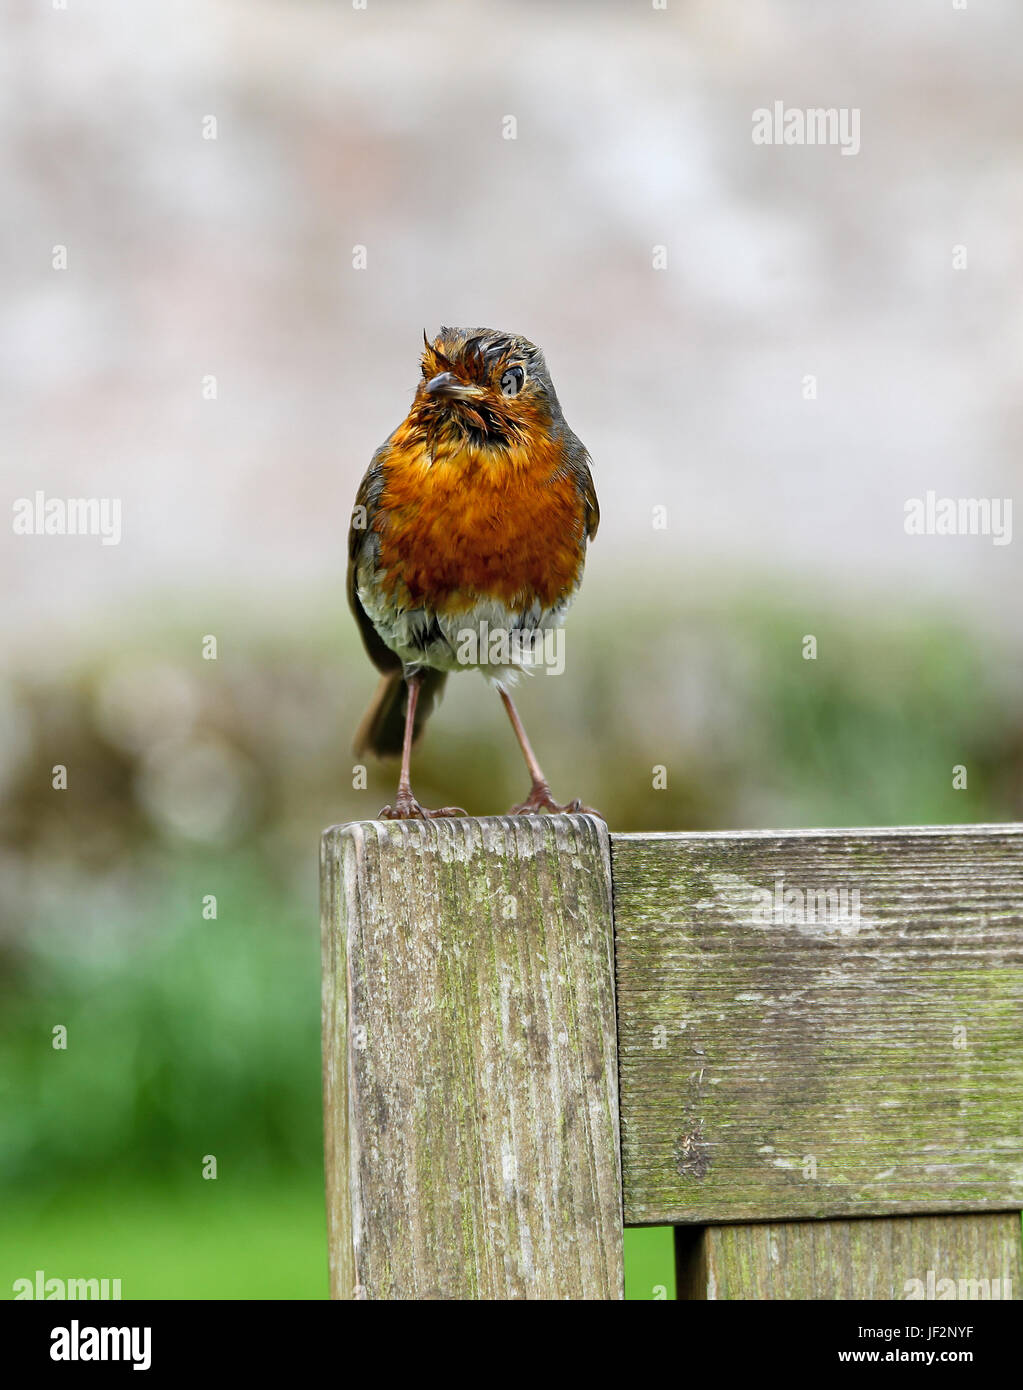 A European robin (Erithacus rubecula), known simply as the robin or robin redbreast  perched on a wooden seat Stock Photo